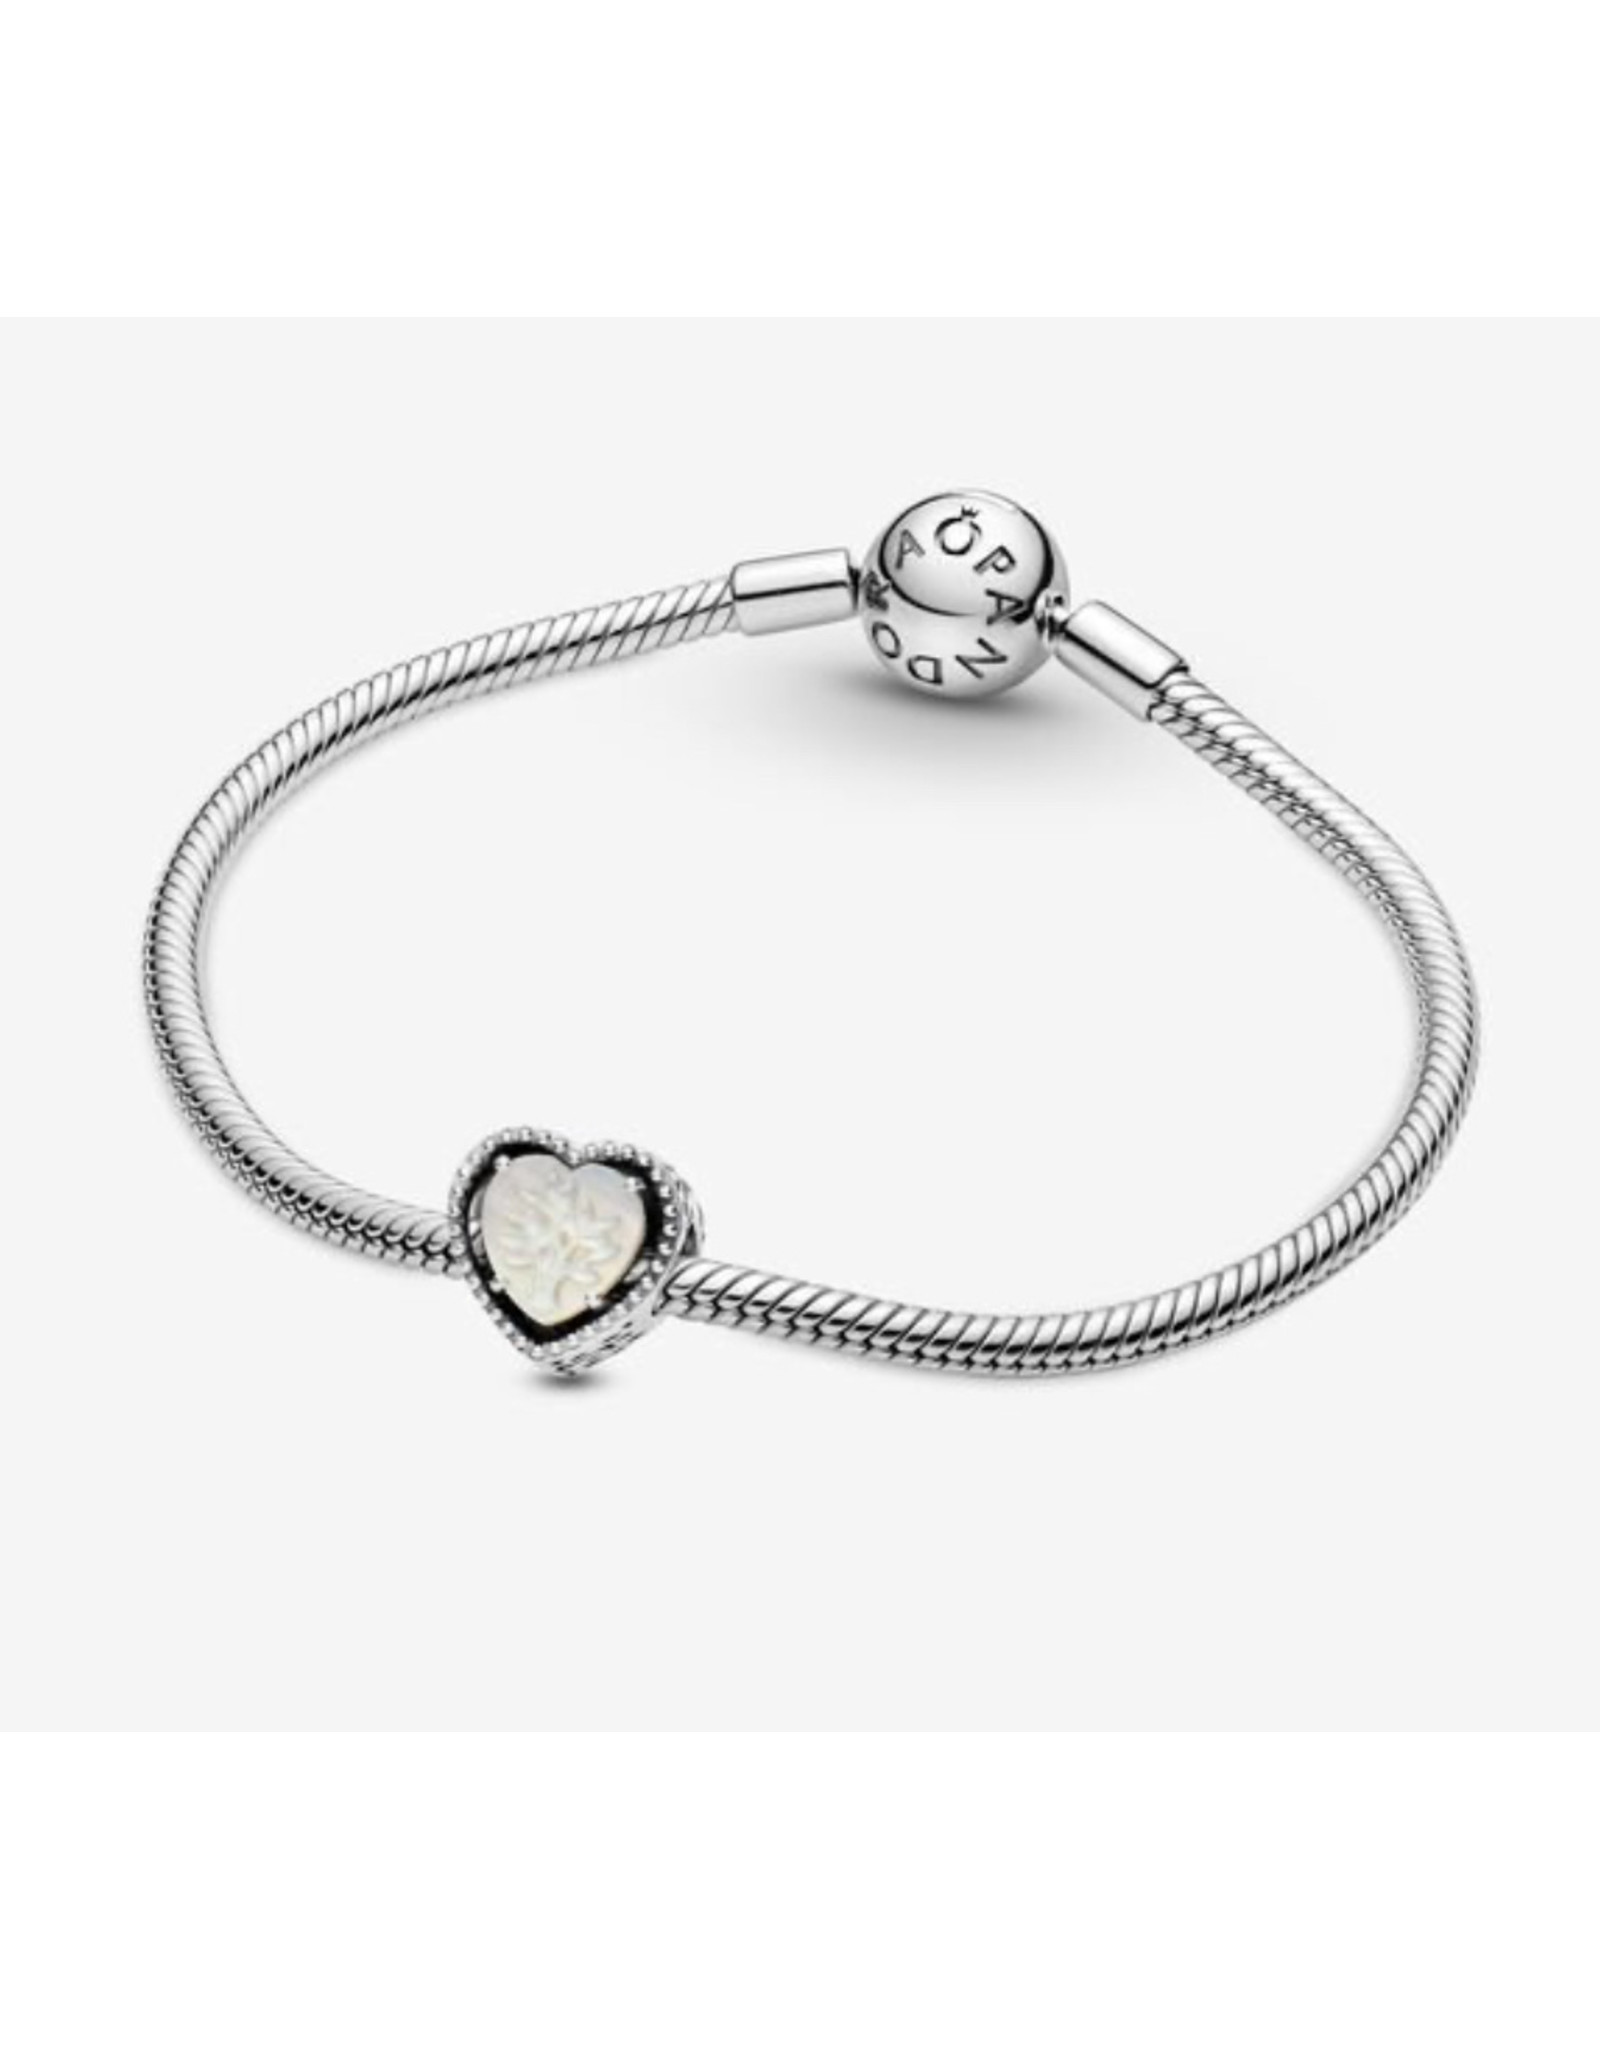 Pandora Pandora Charm,799413C01, Openwork Heart&Family Tree, Mother Of Pearl Stone